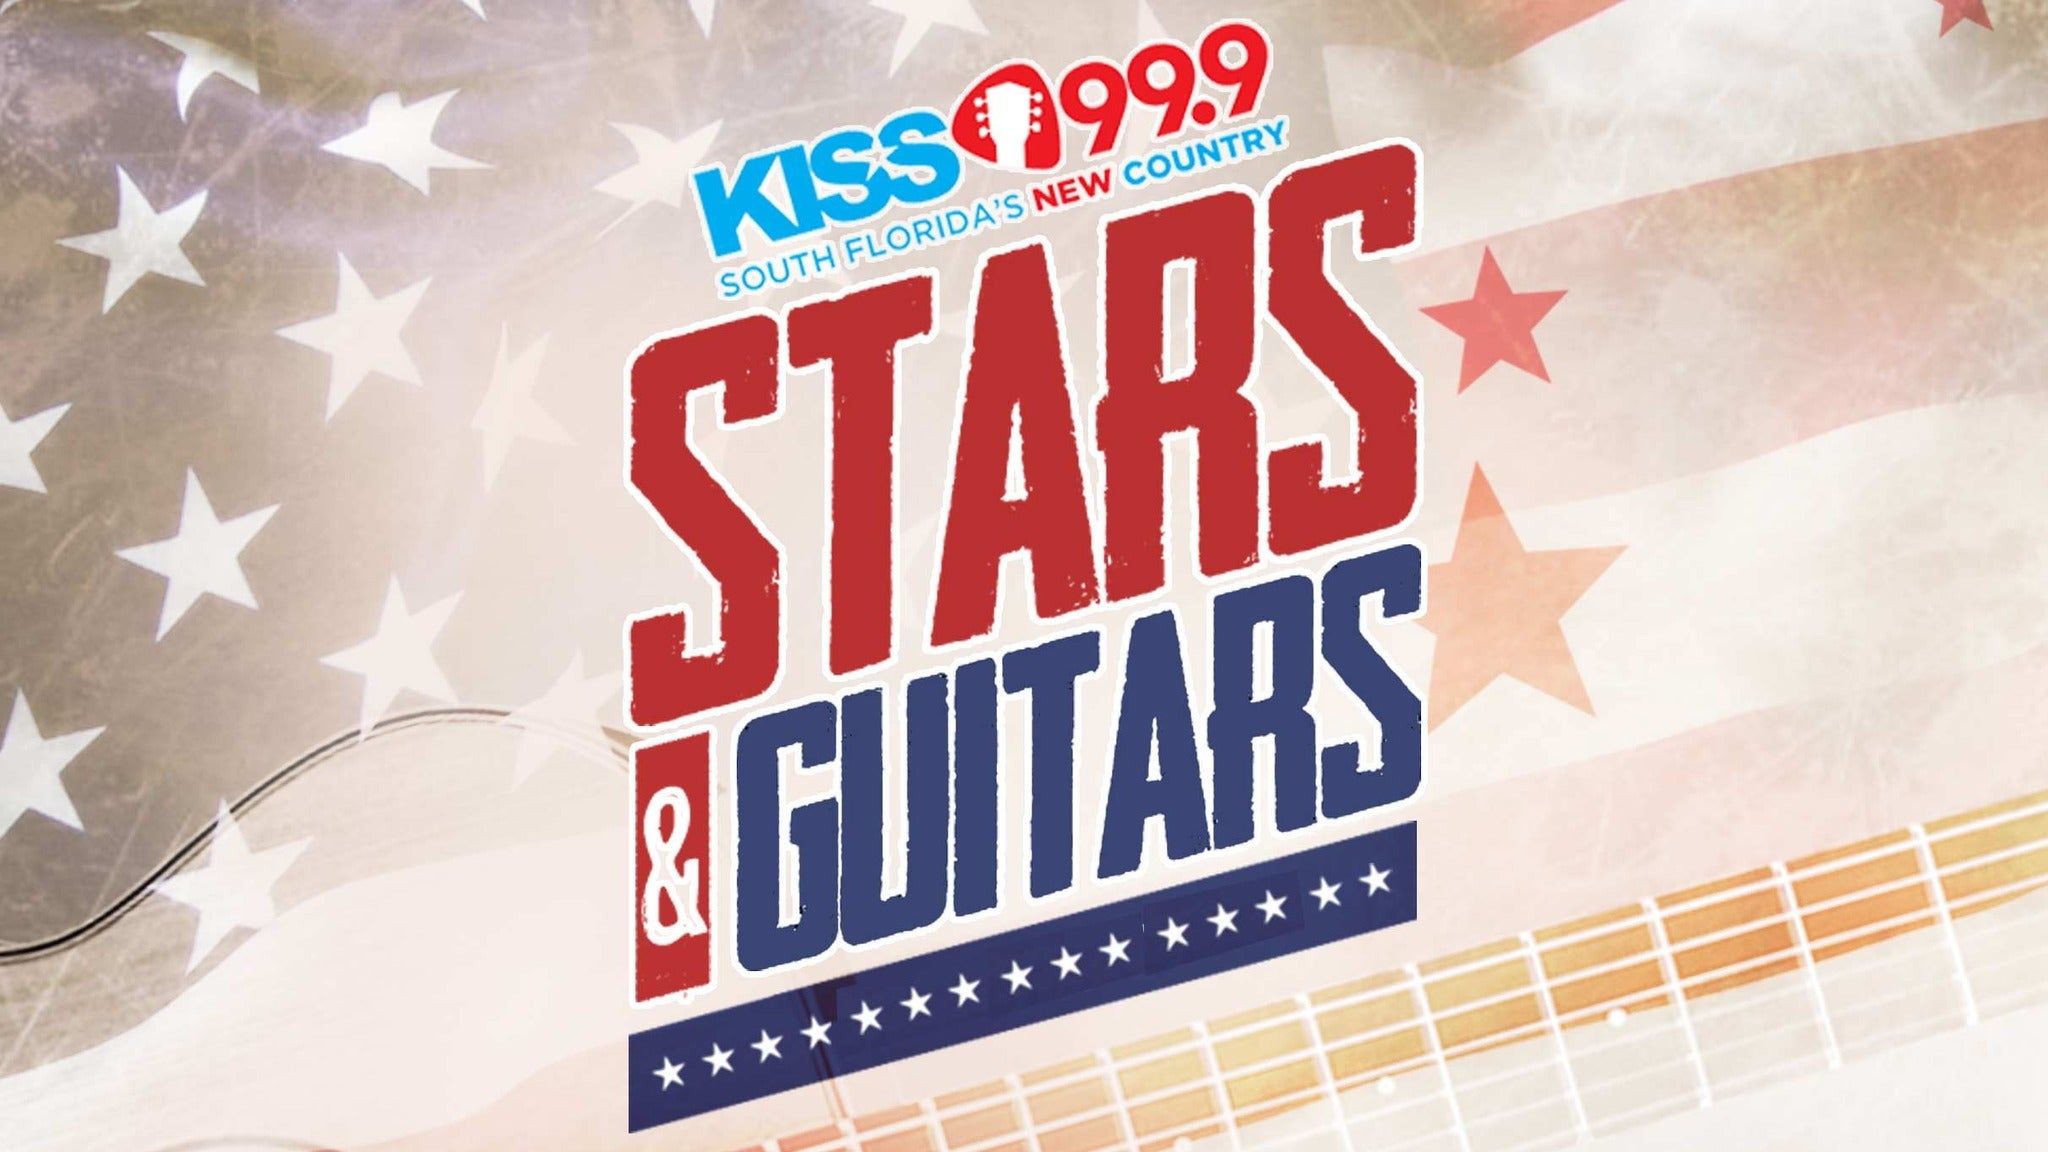 KISS 99.9 Stars & Guitars